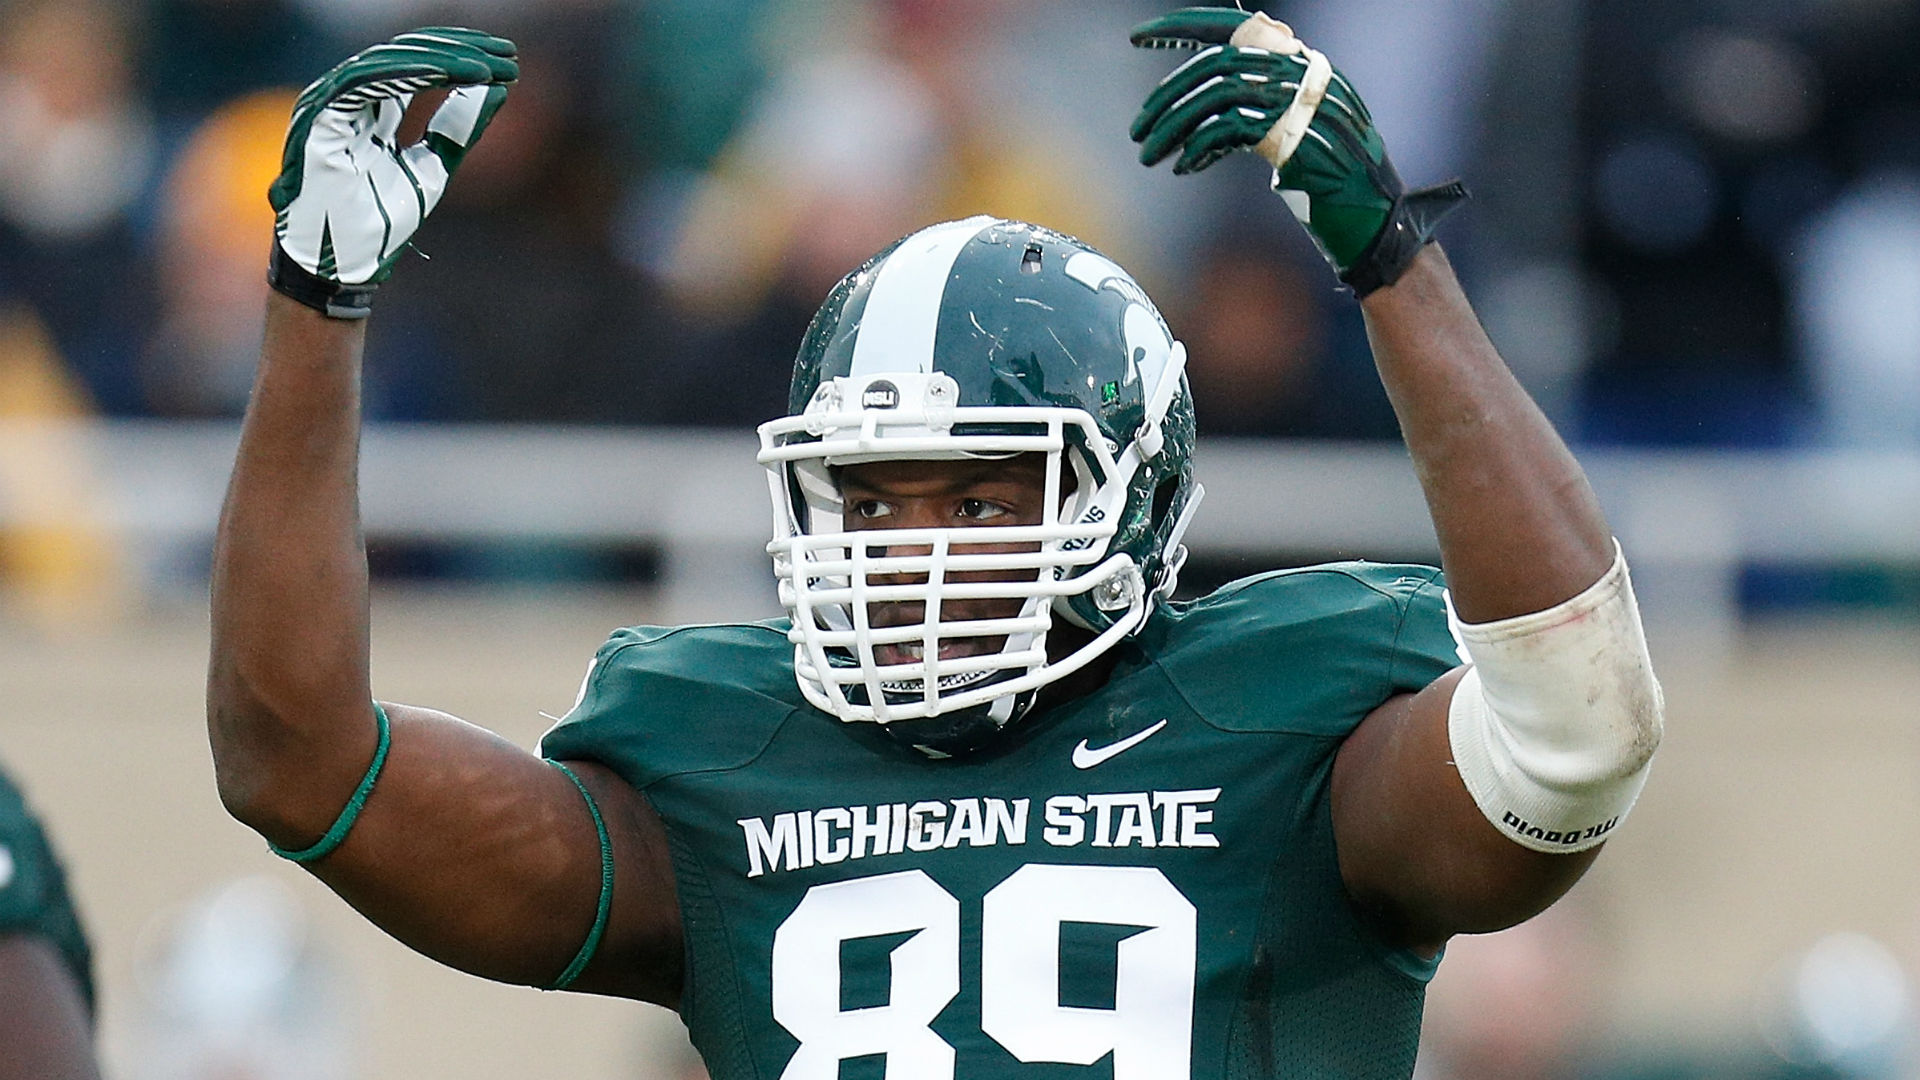 Before becoming a star, Shilique Calhoun had to be humbled